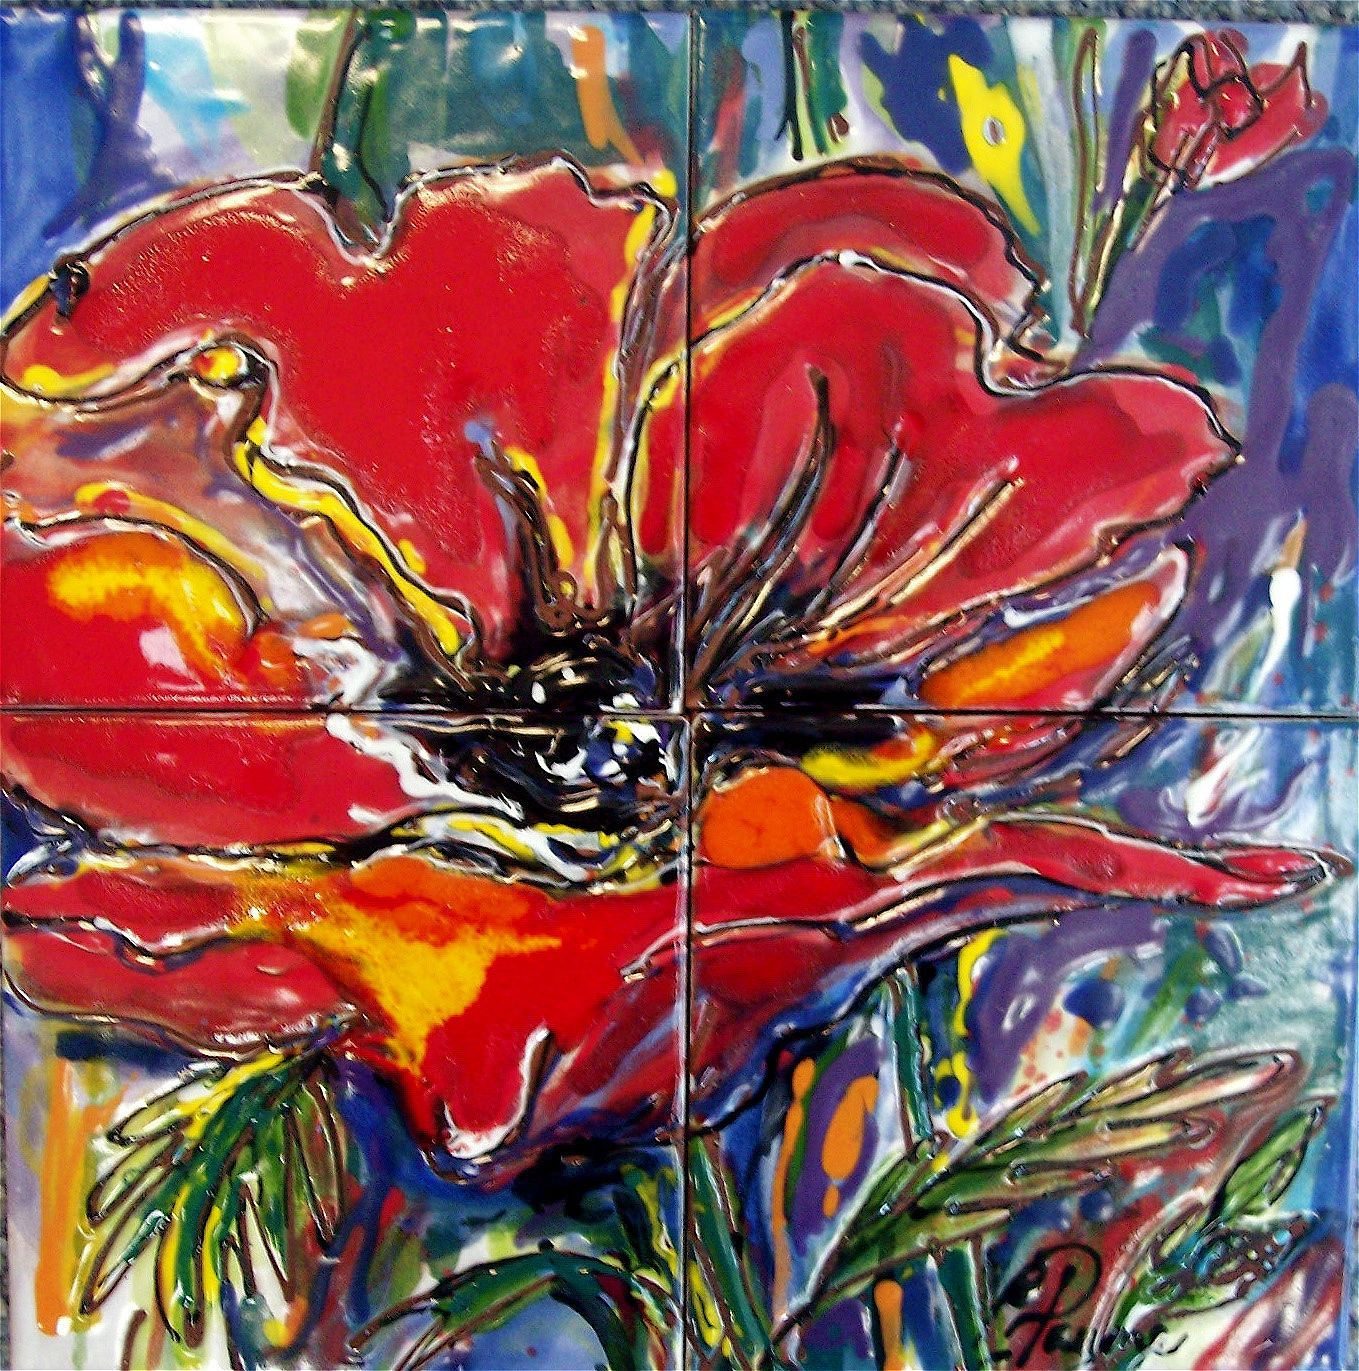 Carolyn payne murals hand painted tile mural of poppy floral 6 carolyn payne murals hand painted tile mural of poppy floral 6 ceramic tile doublecrazyfo Images